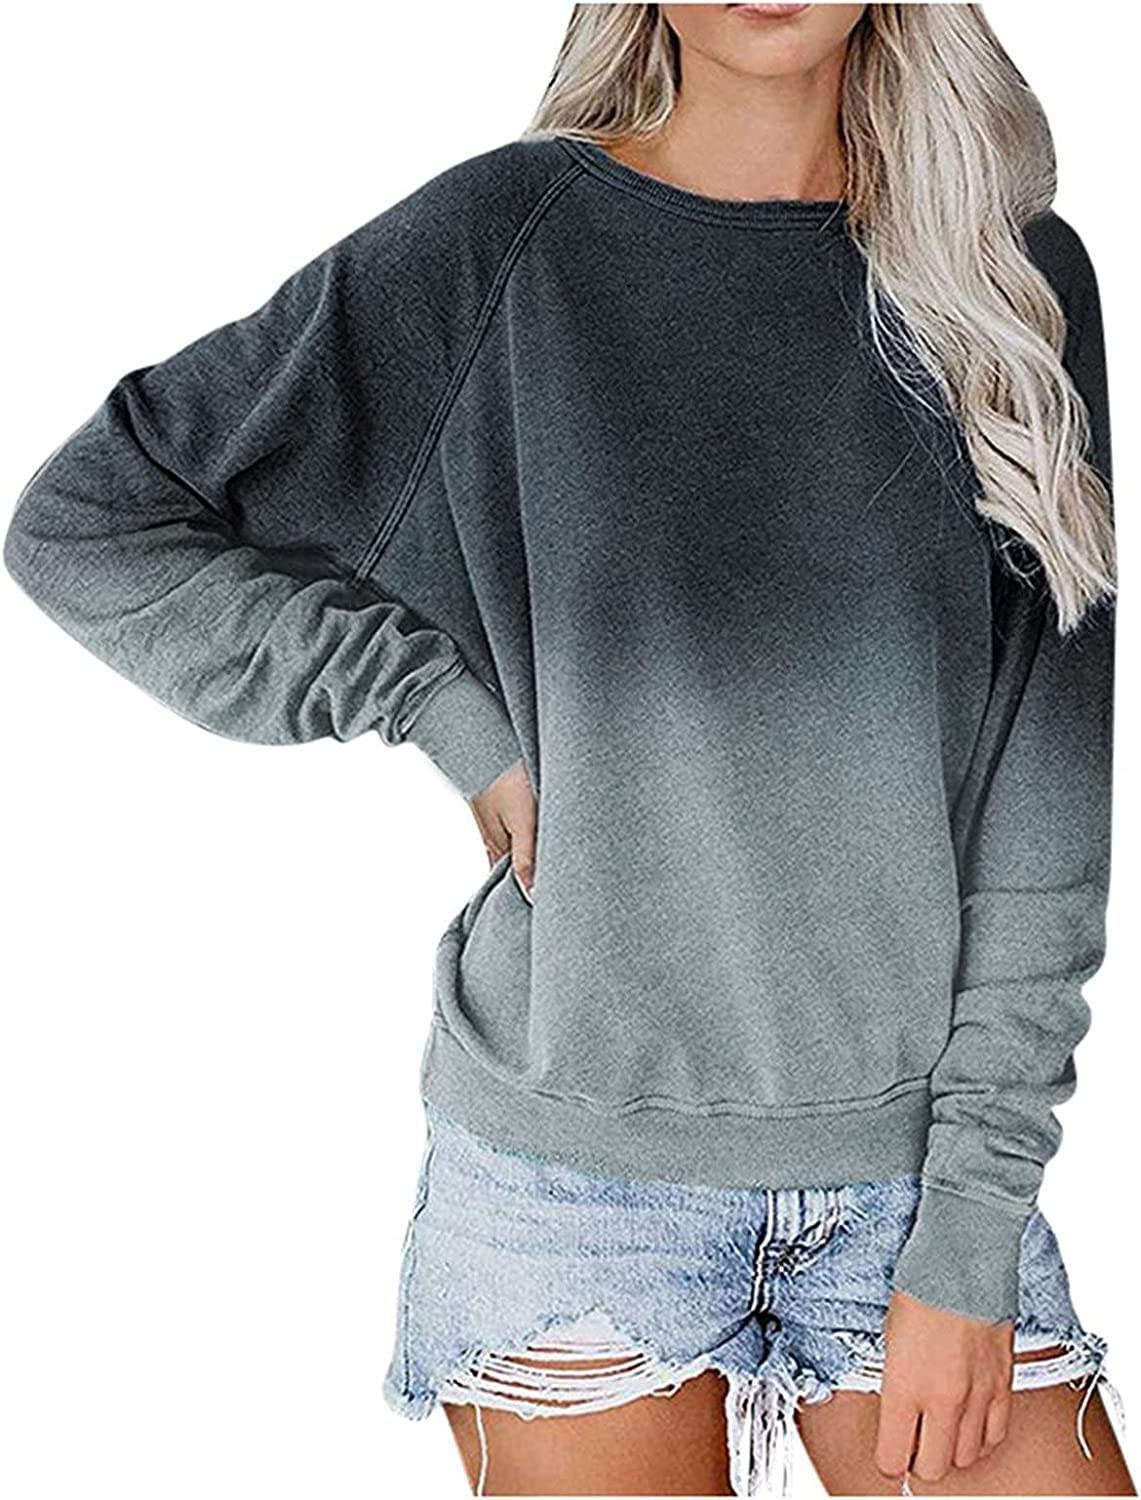 Sweatshirts for Women, Womens Pullover Oversized Vintage Solid Long Sleeve Plus Size Sweatshirt Sweaters Tops Shirts